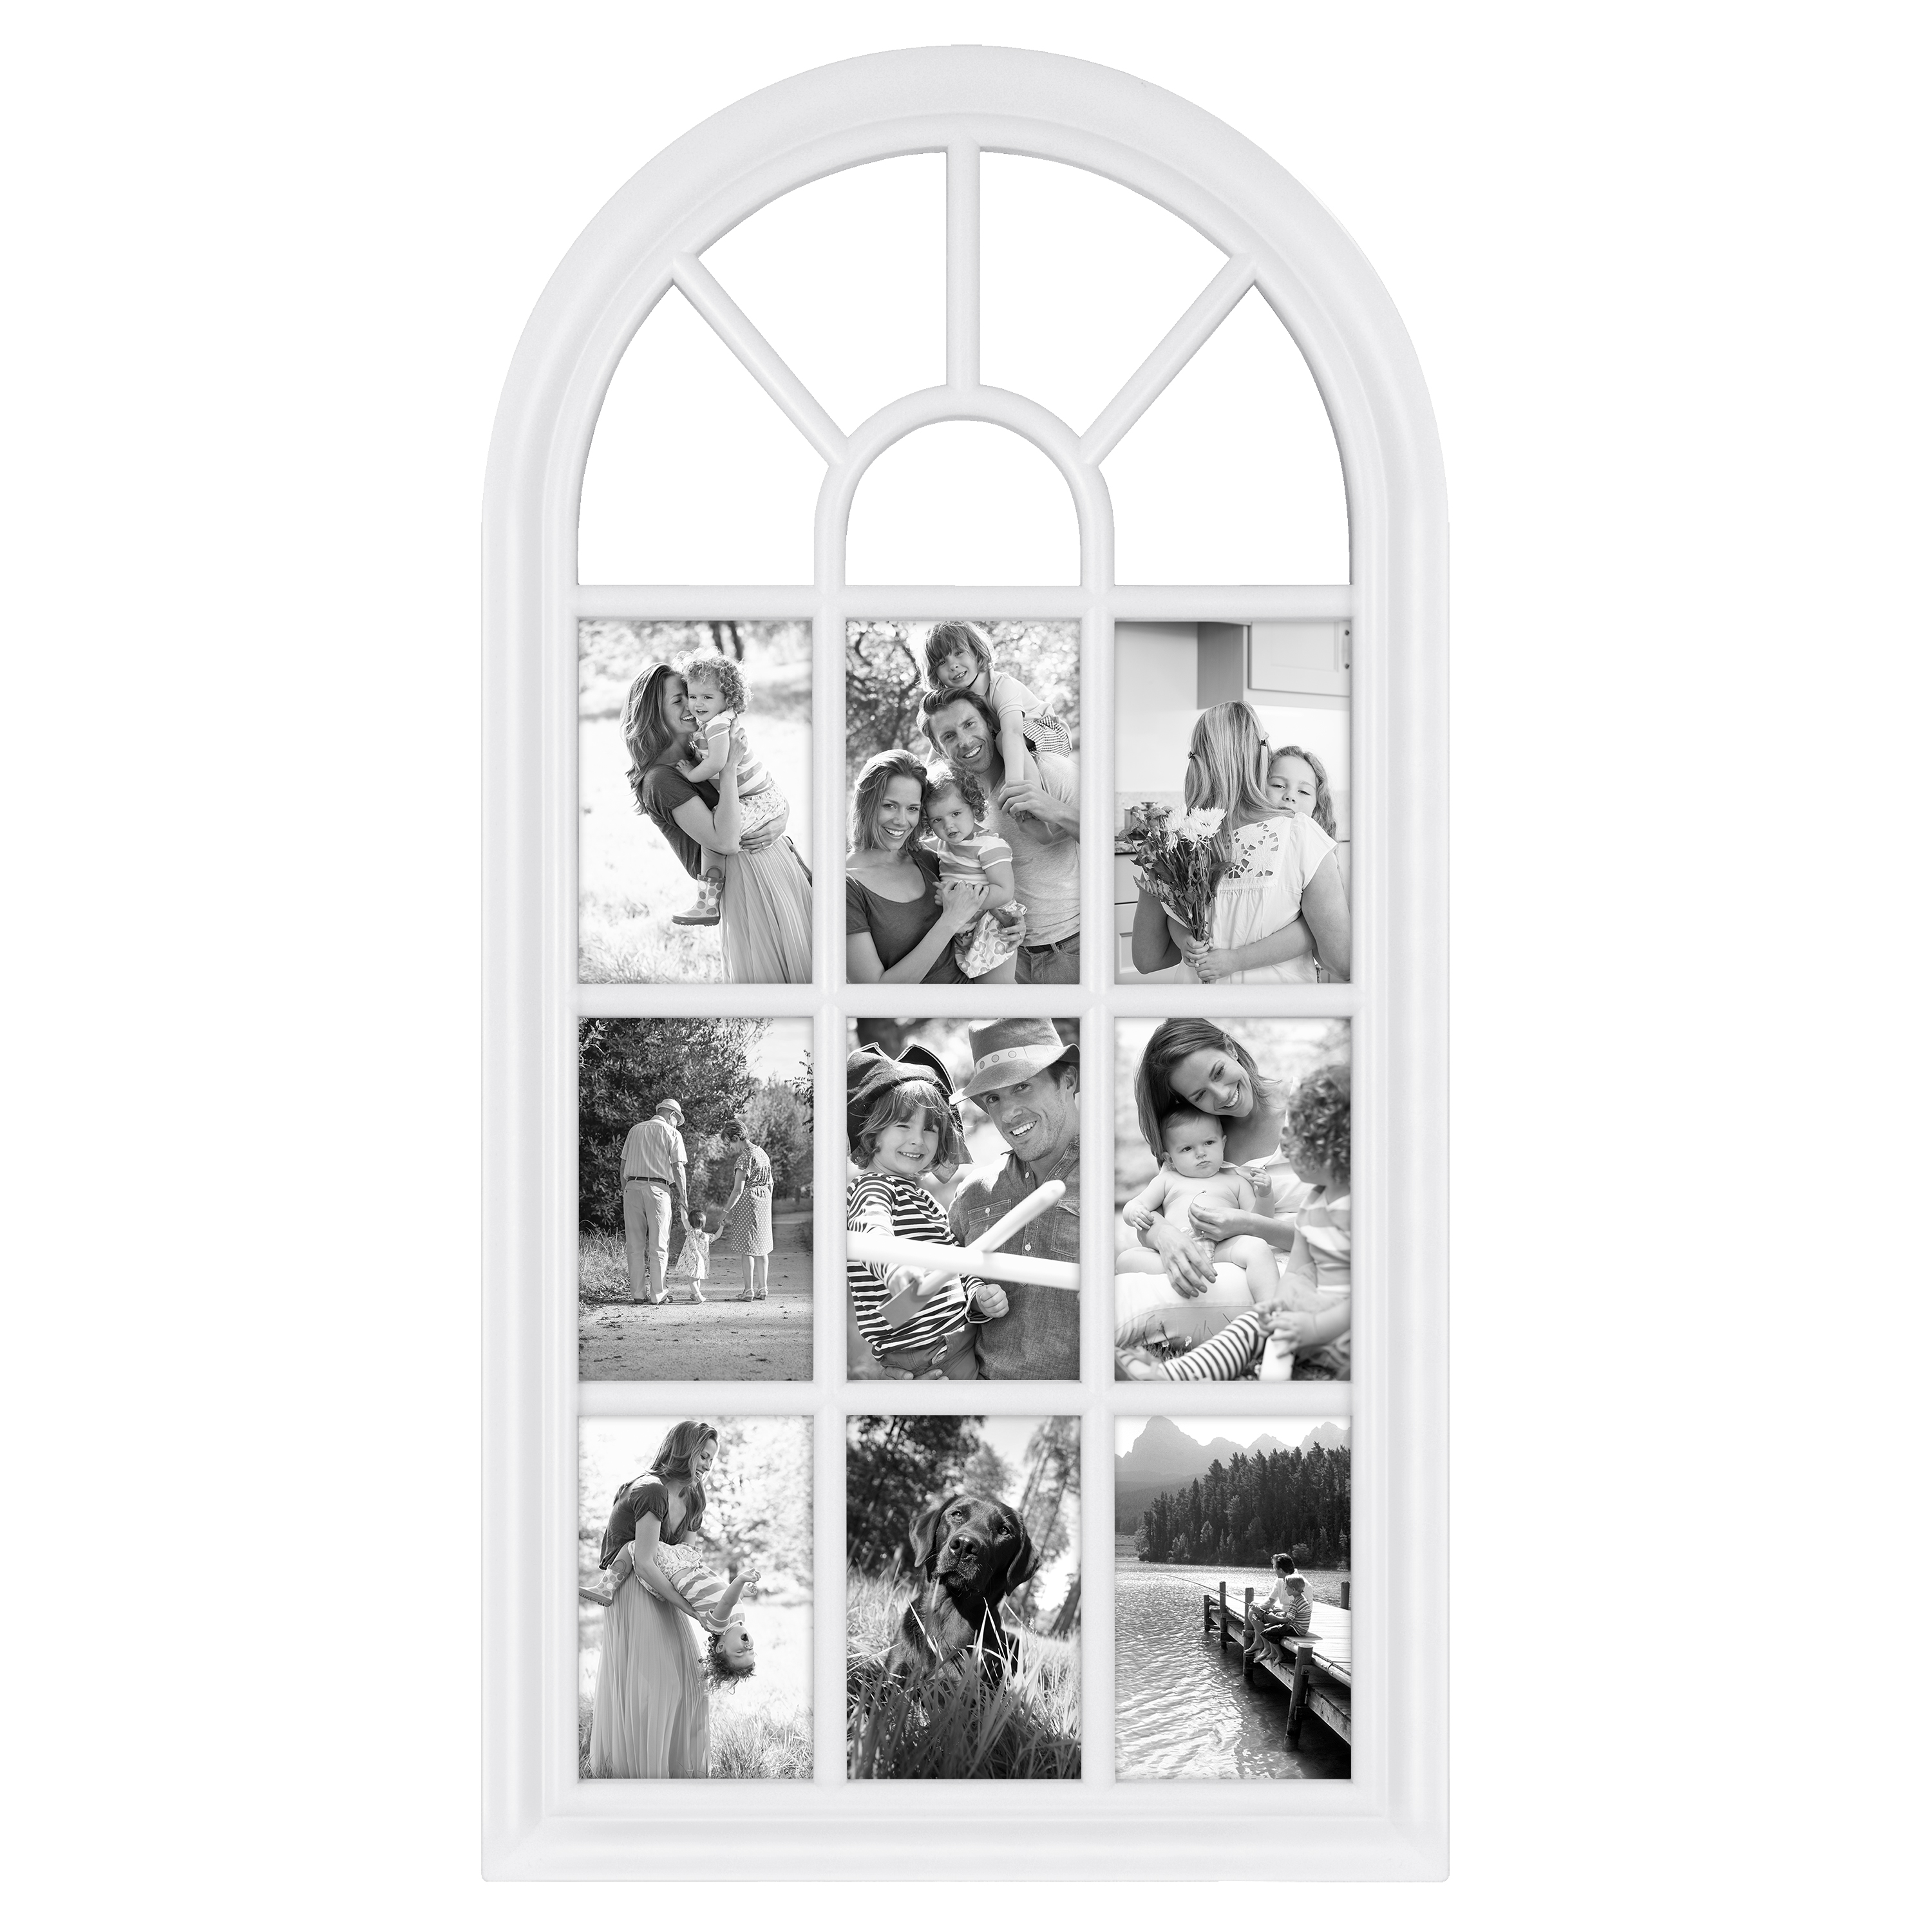 28 X 14 White Arched Window Pane Collage Picture Frame Walmartcom